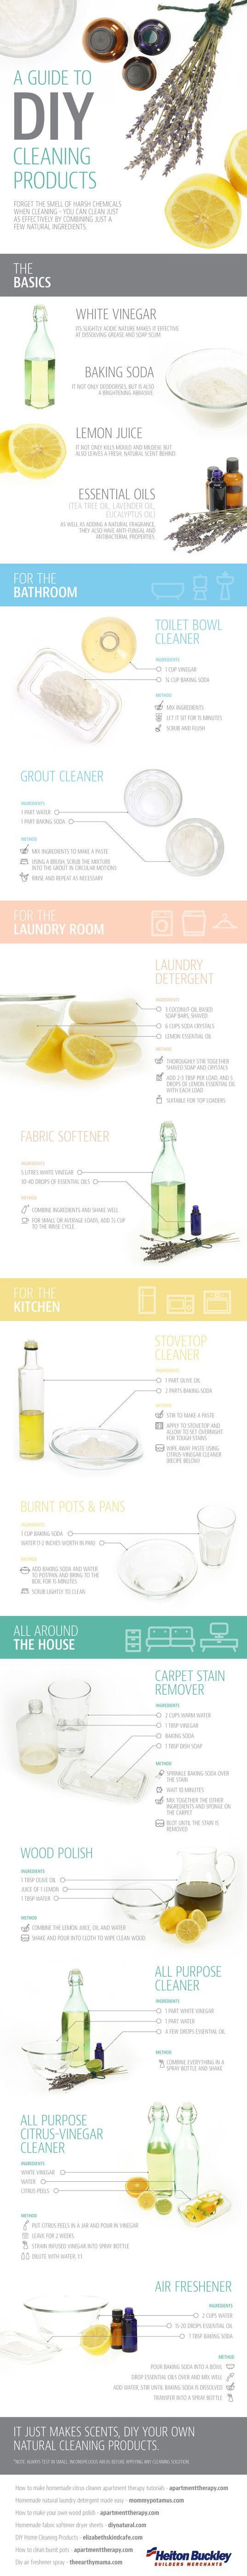 INFOGRAPHIC: A Guide to Natural, DIY Cleaning Products | Inhabitat - Sustainable Design Innovation, Eco Architecture, Green Building